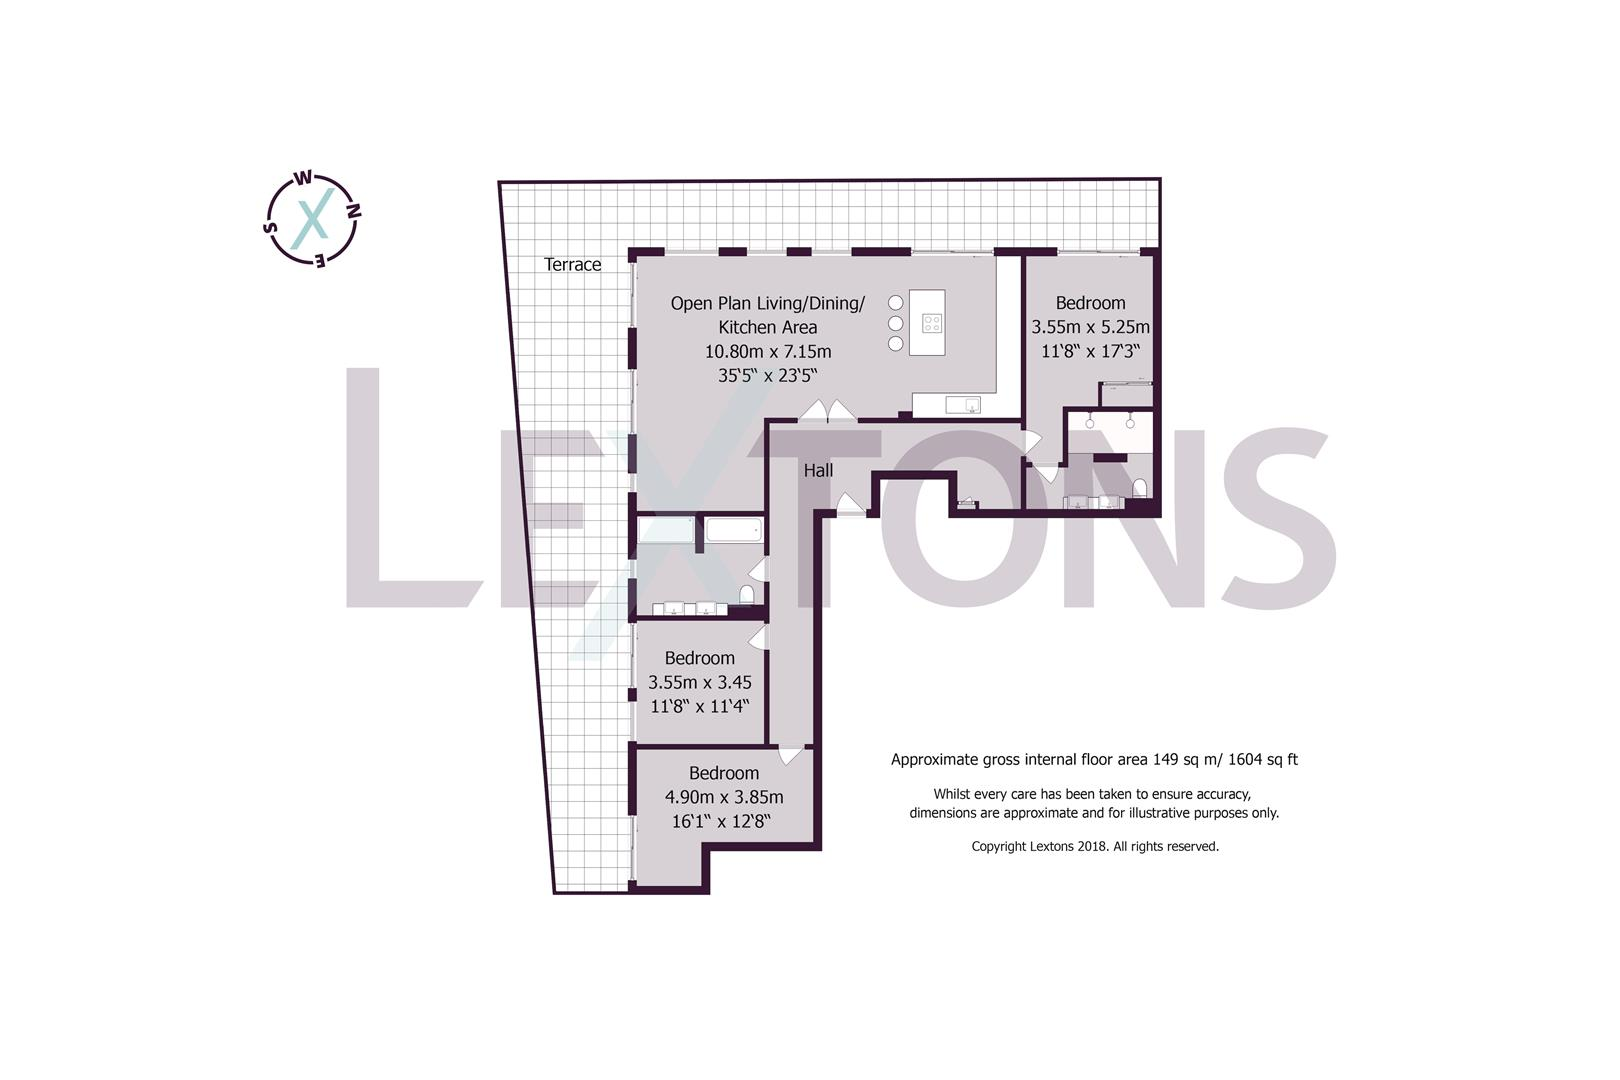 Floorplans For Dorset Gardens, Brighton